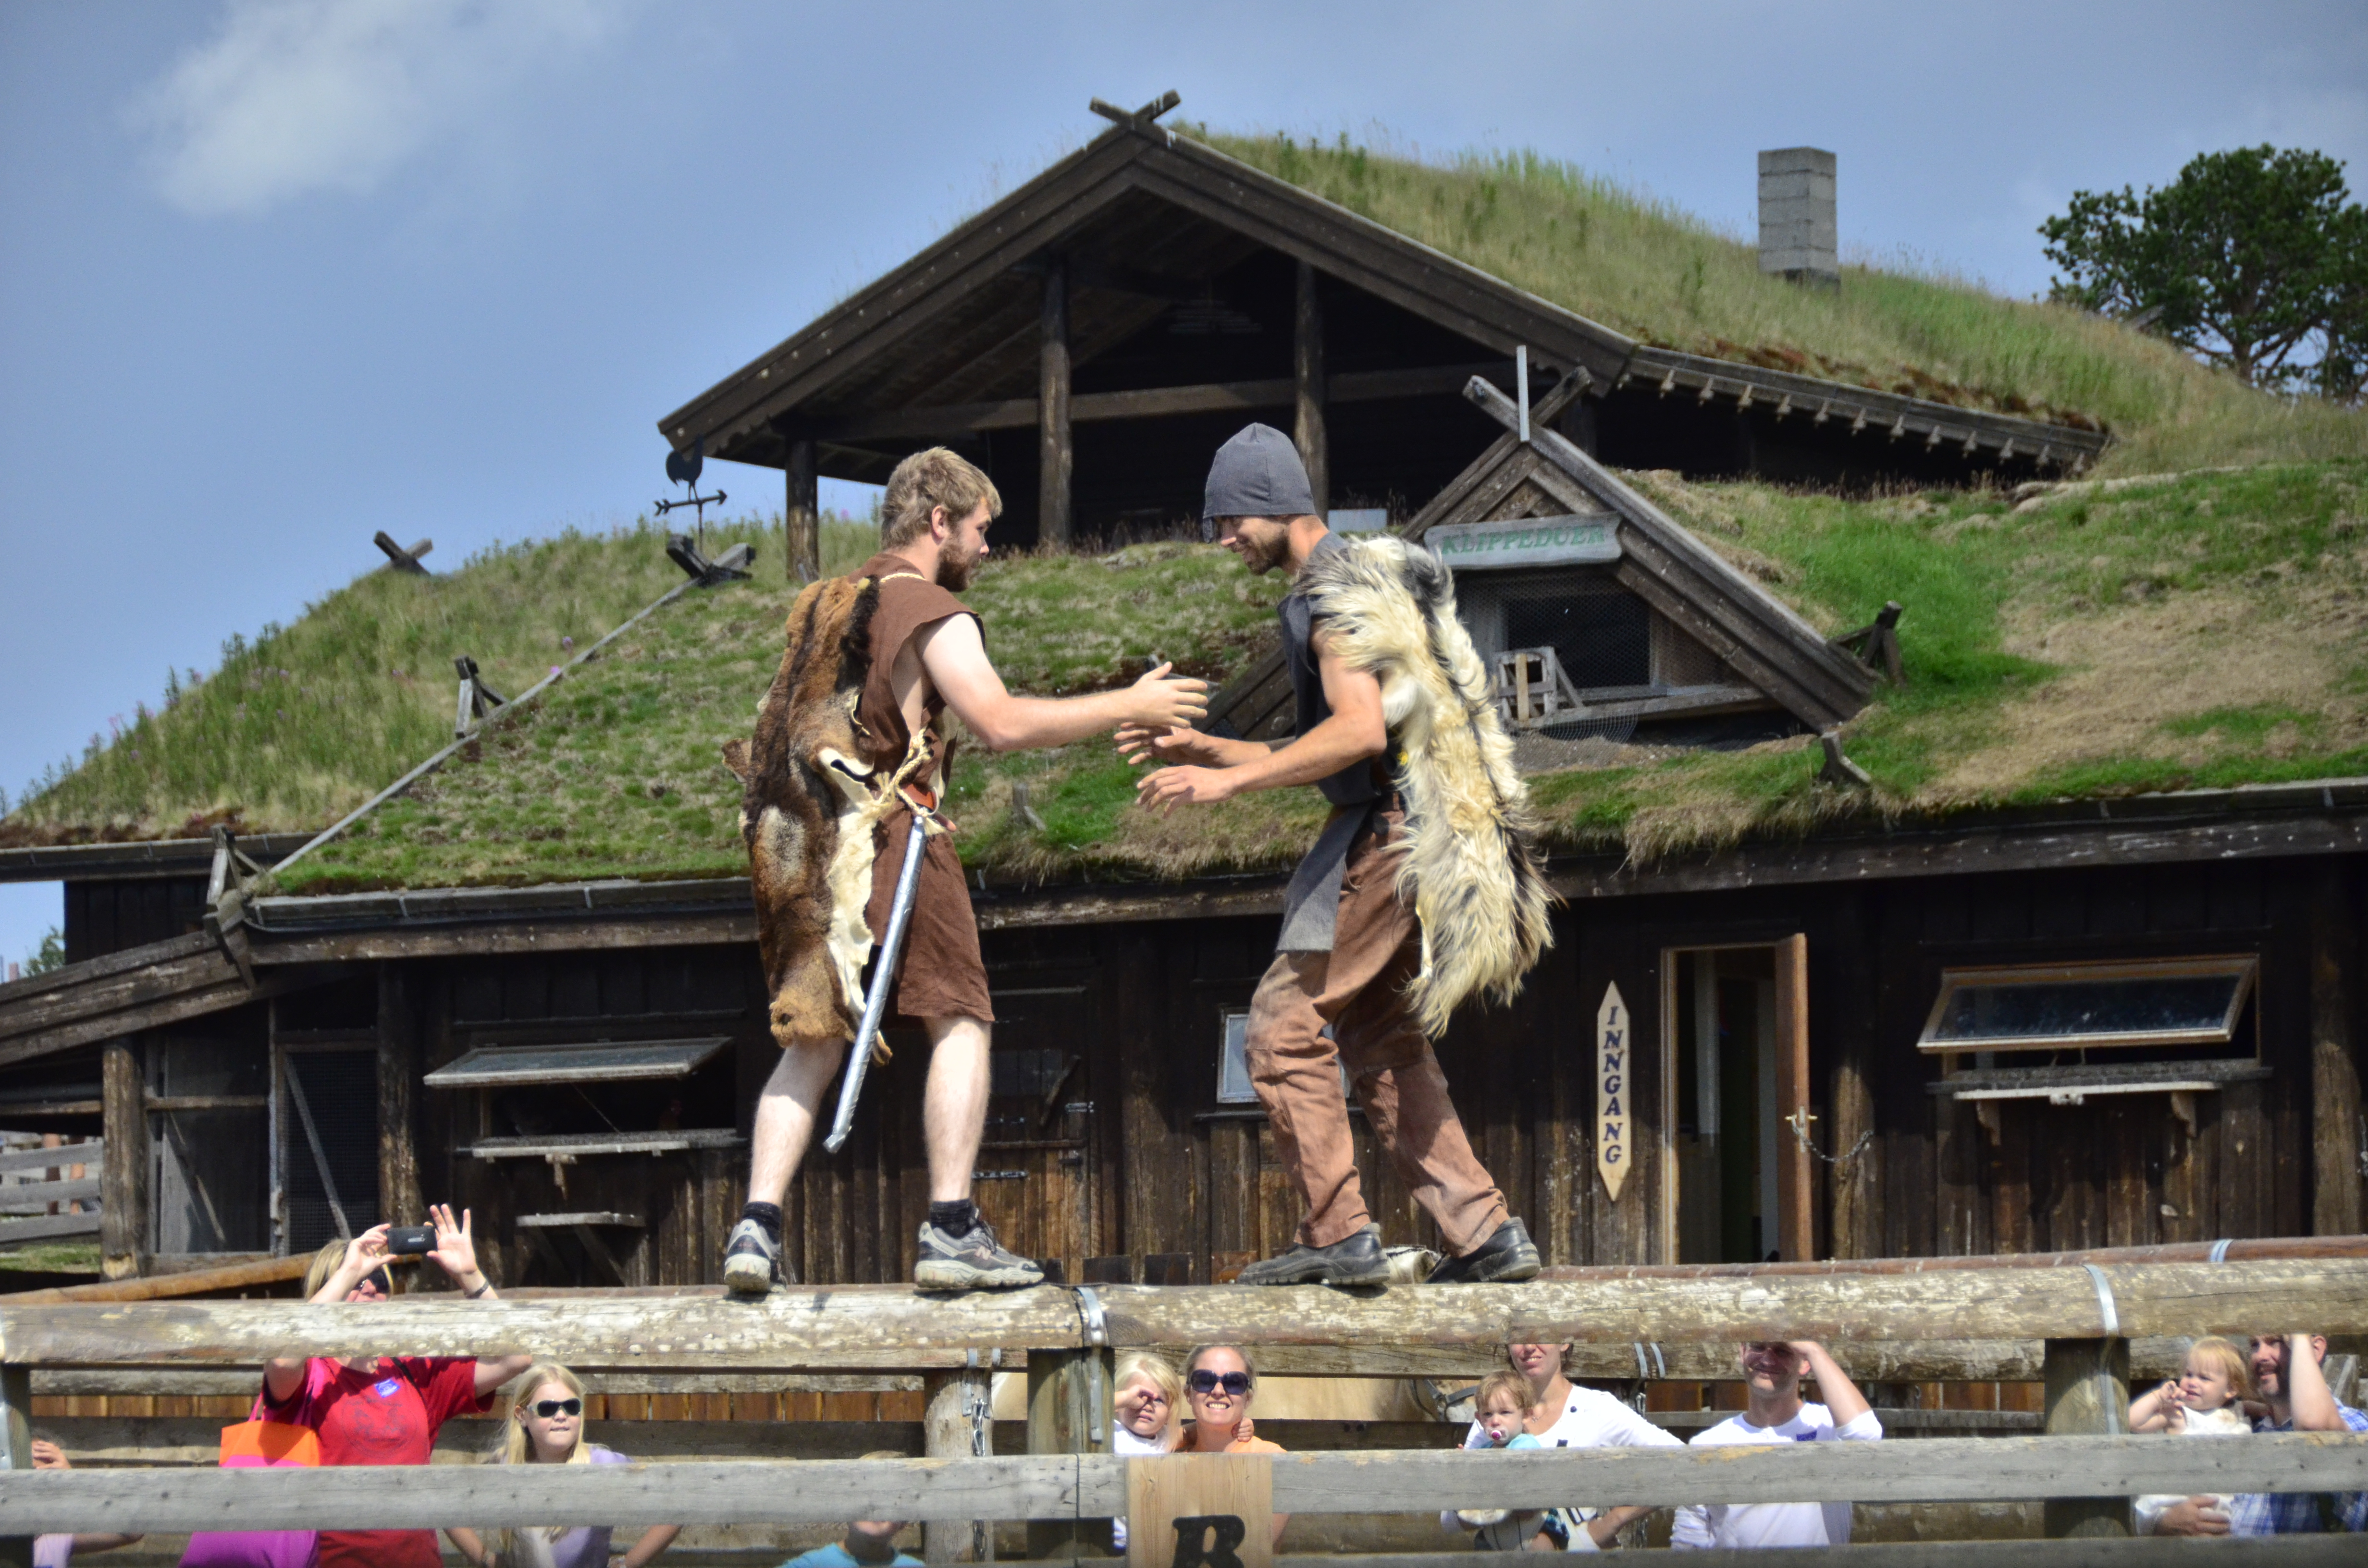 Medieval festival 20th July at Langedrag